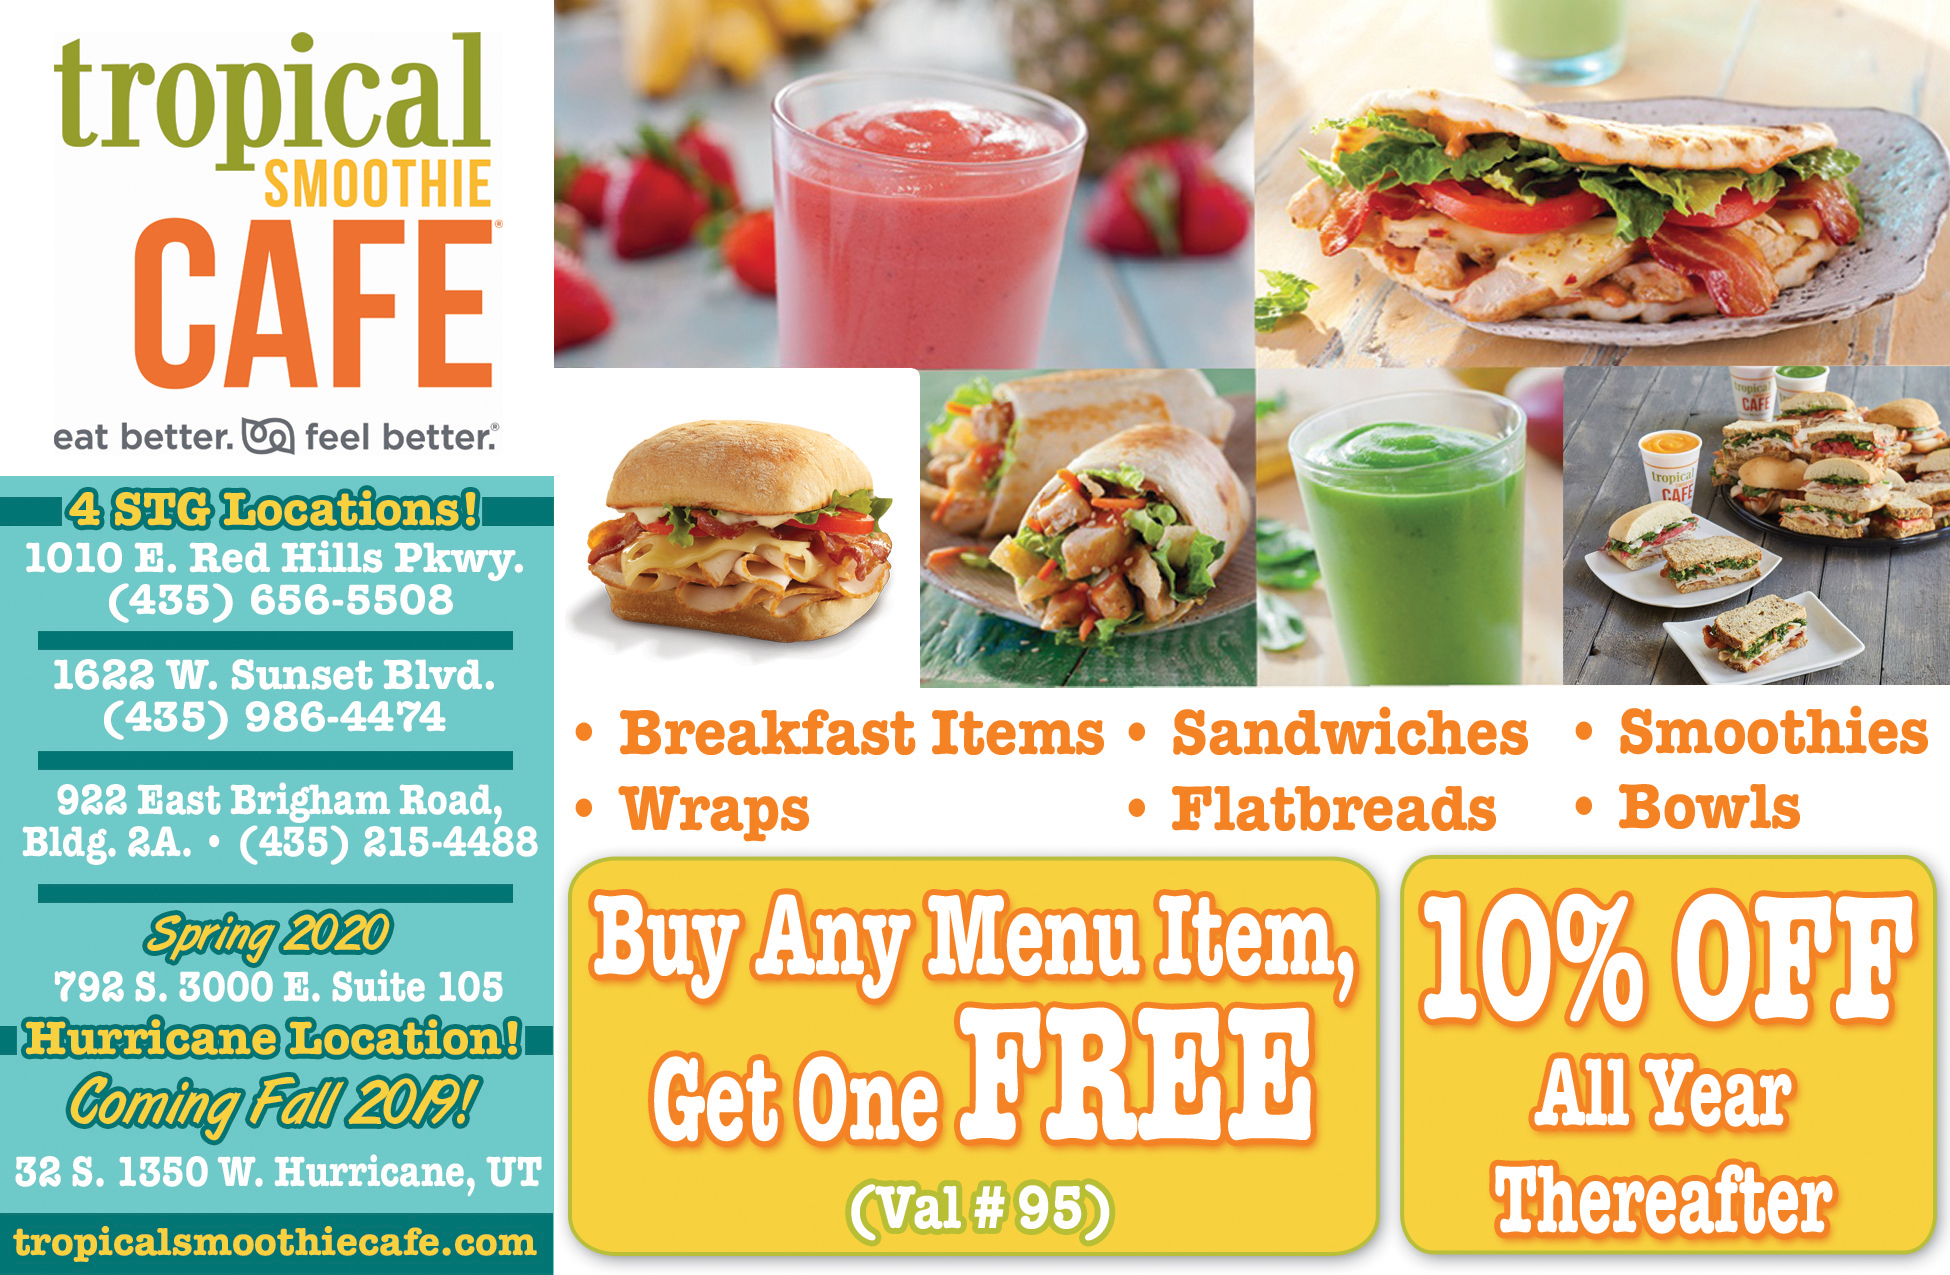 Tropical Smoothie Cafe - smoothies, sandwiches